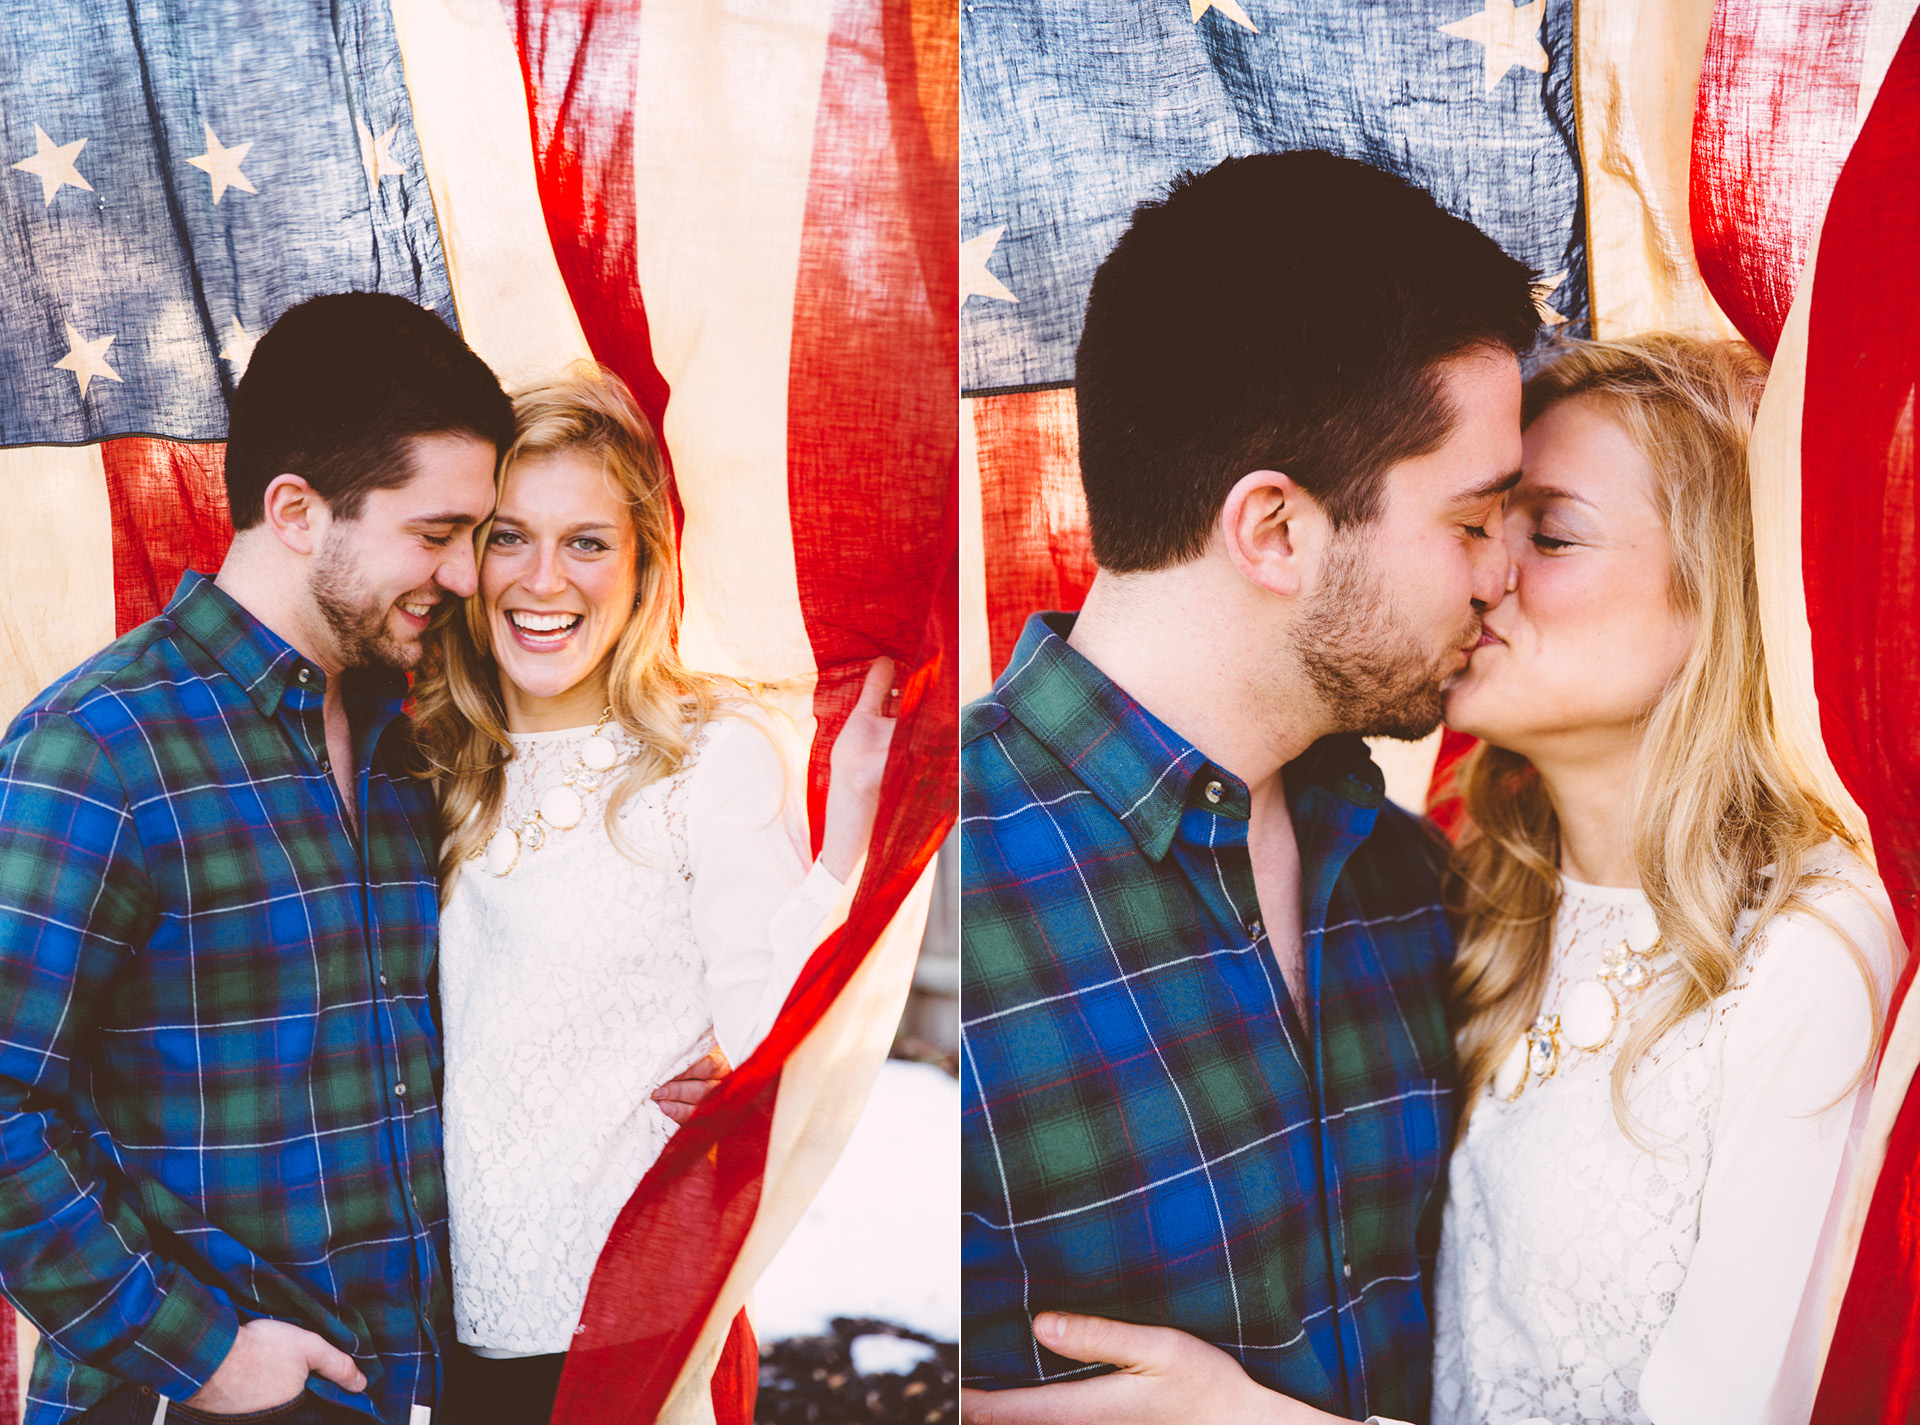 Winter Engagement Session in Bay Village - Too Much Awesomeness - Cleveland Wedding Photographer 09.jpg